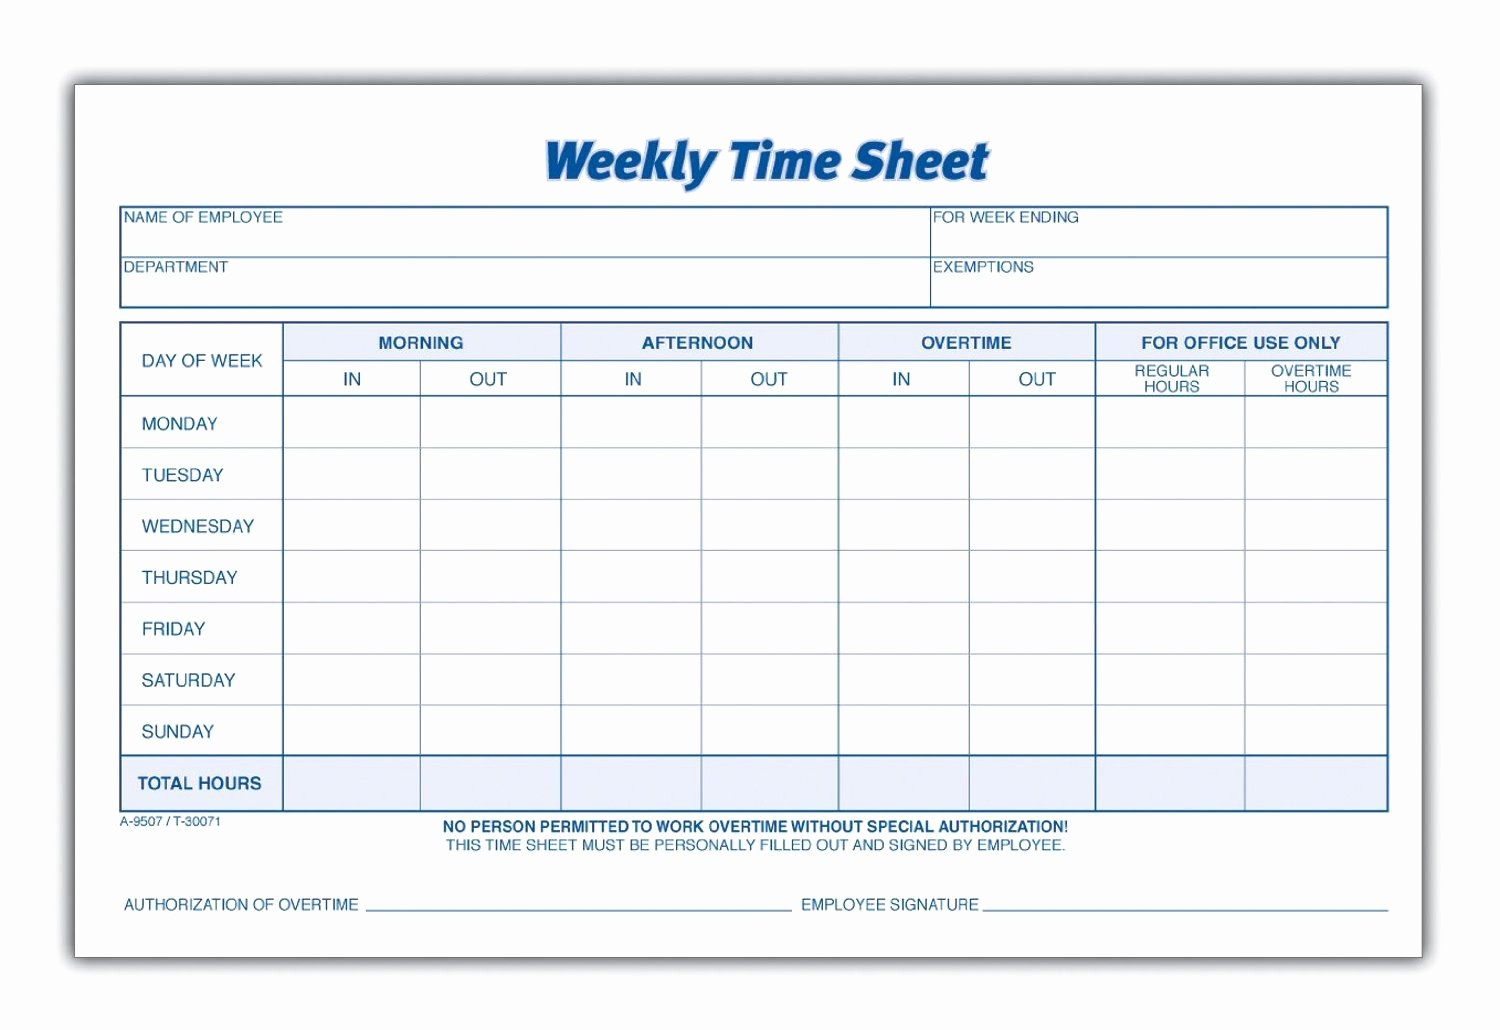 Clock In and Out Timesheet Beautiful Weekly Employee Time Sheet Projects to Try